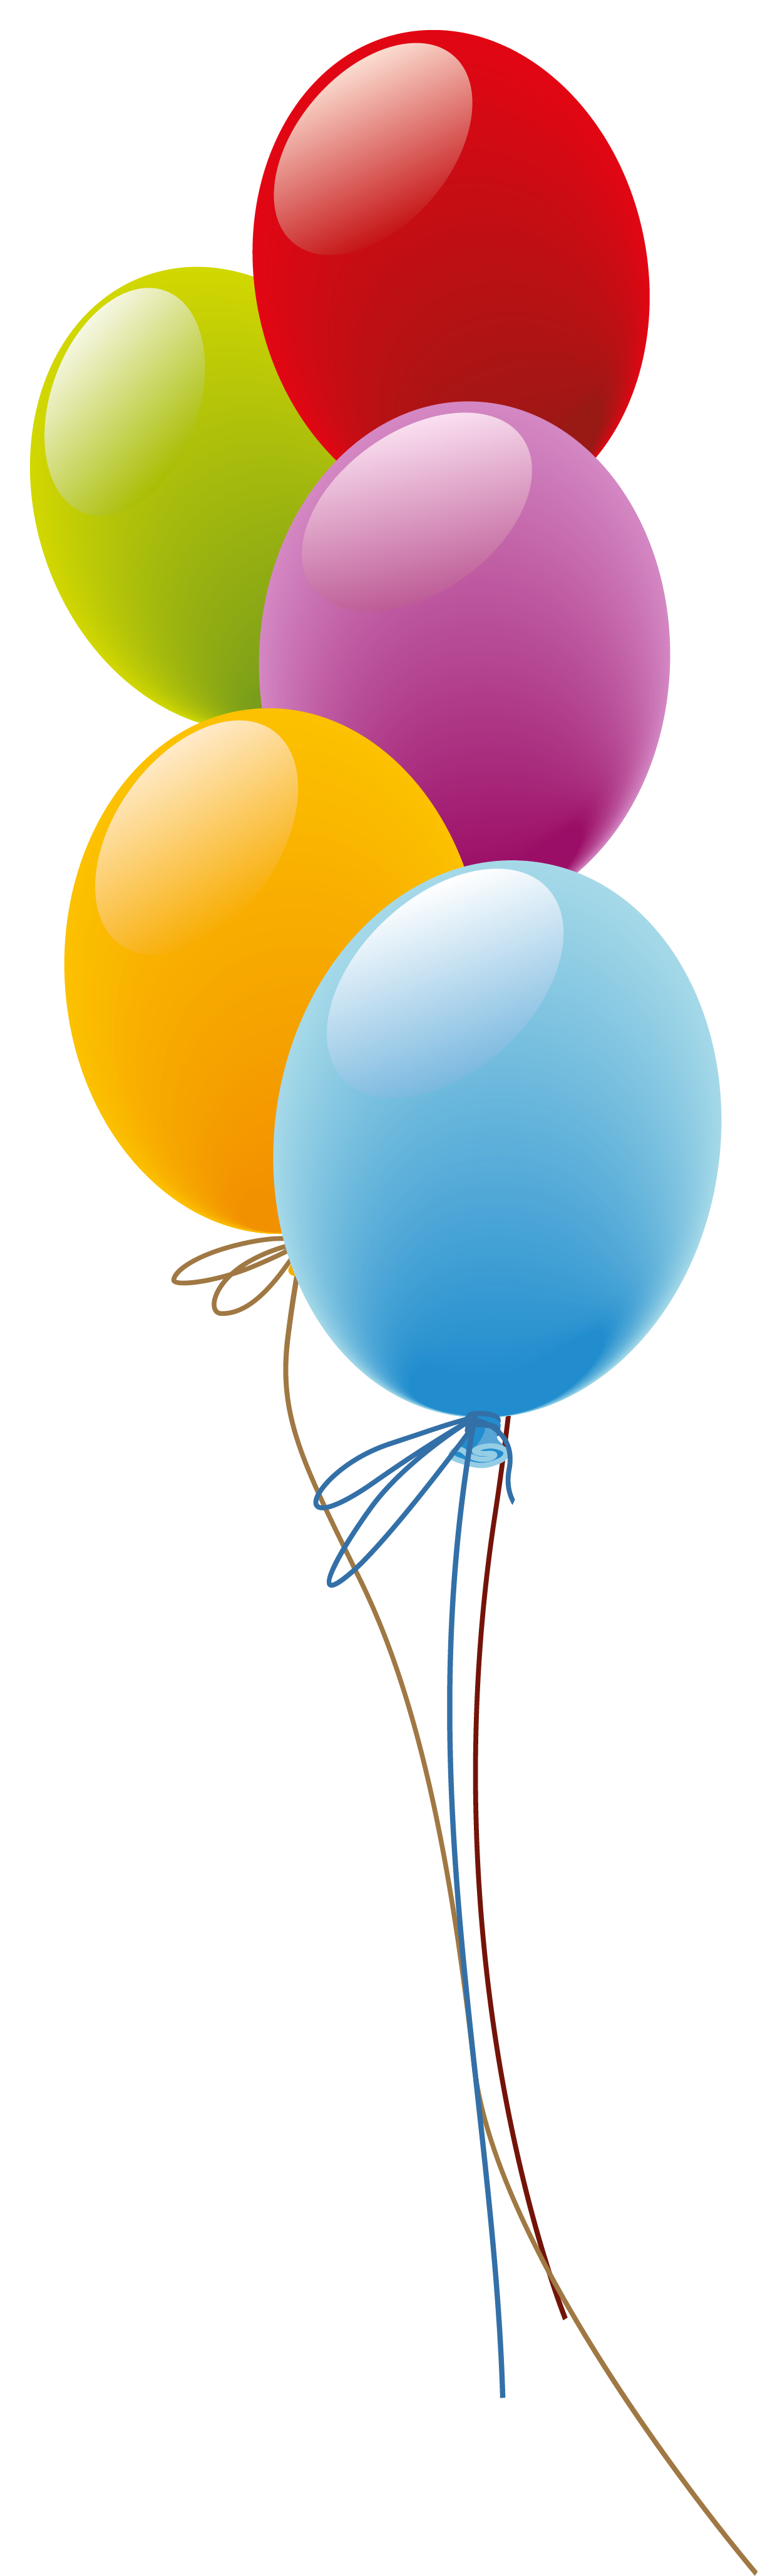 Cliparts zum 80 geburtstag svg freeuse download Balloons PNG Picture | Artistic Elements - Balloons | Pinterest ... svg freeuse download